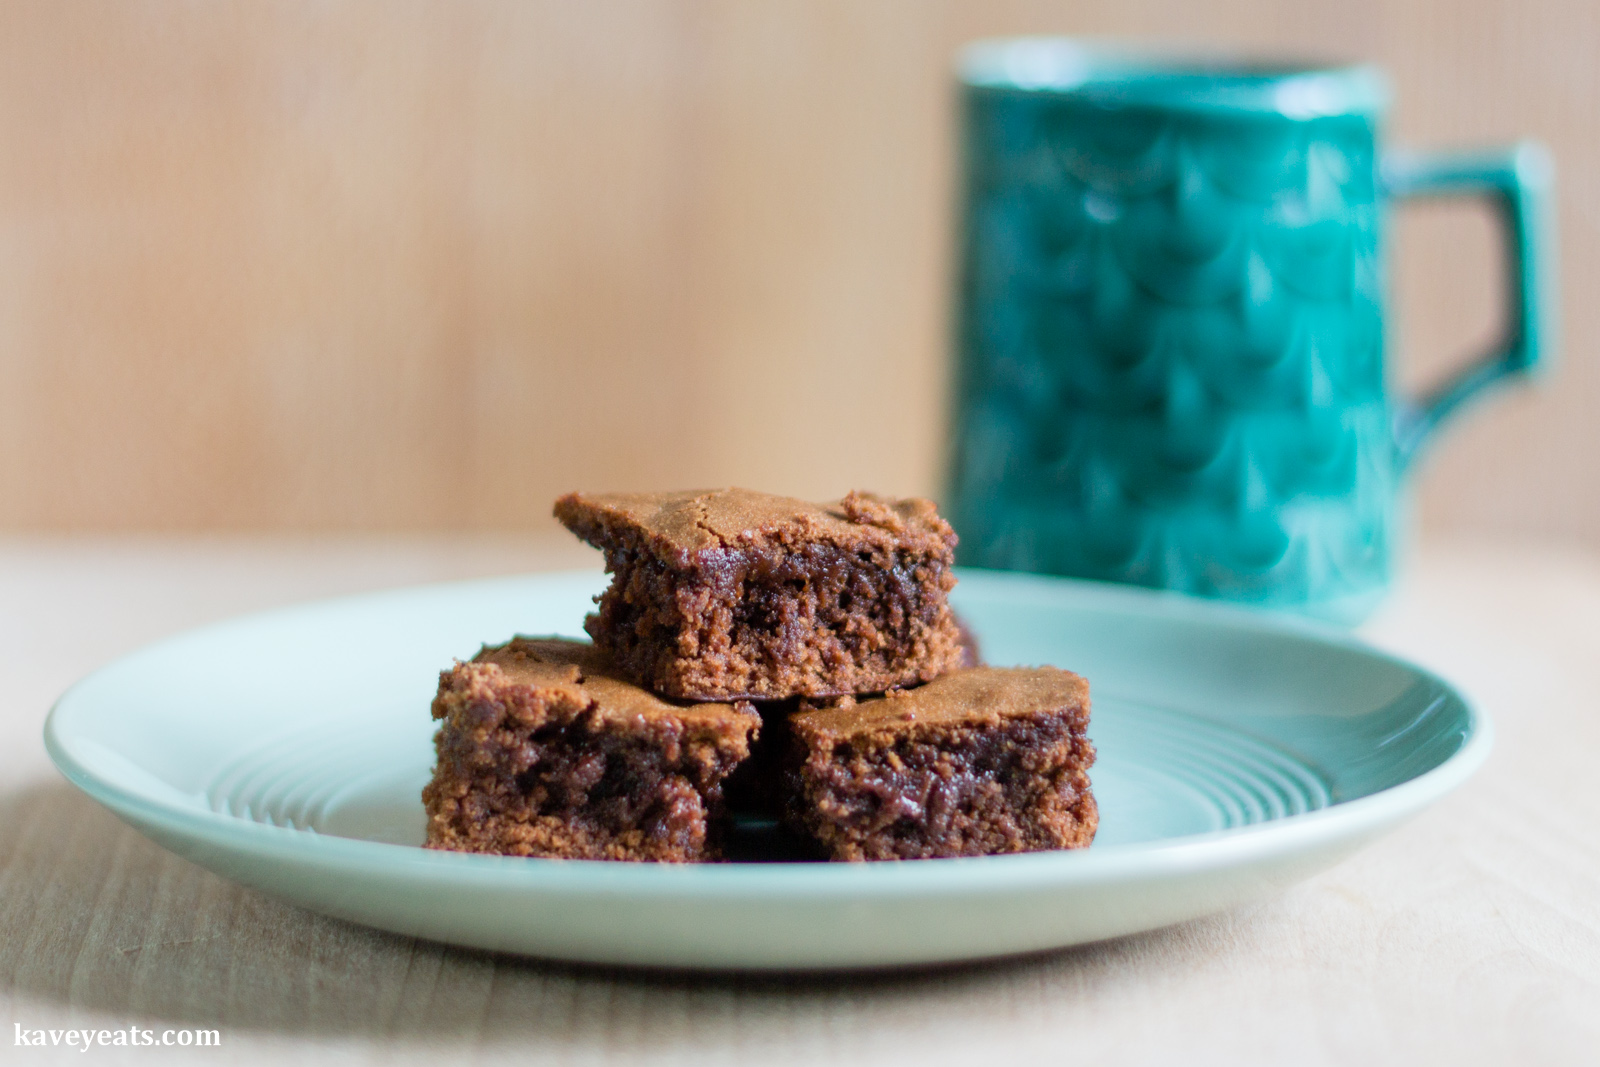 Lebanese-Inspired Carob Molasses & Tahini Chocolate Brownies